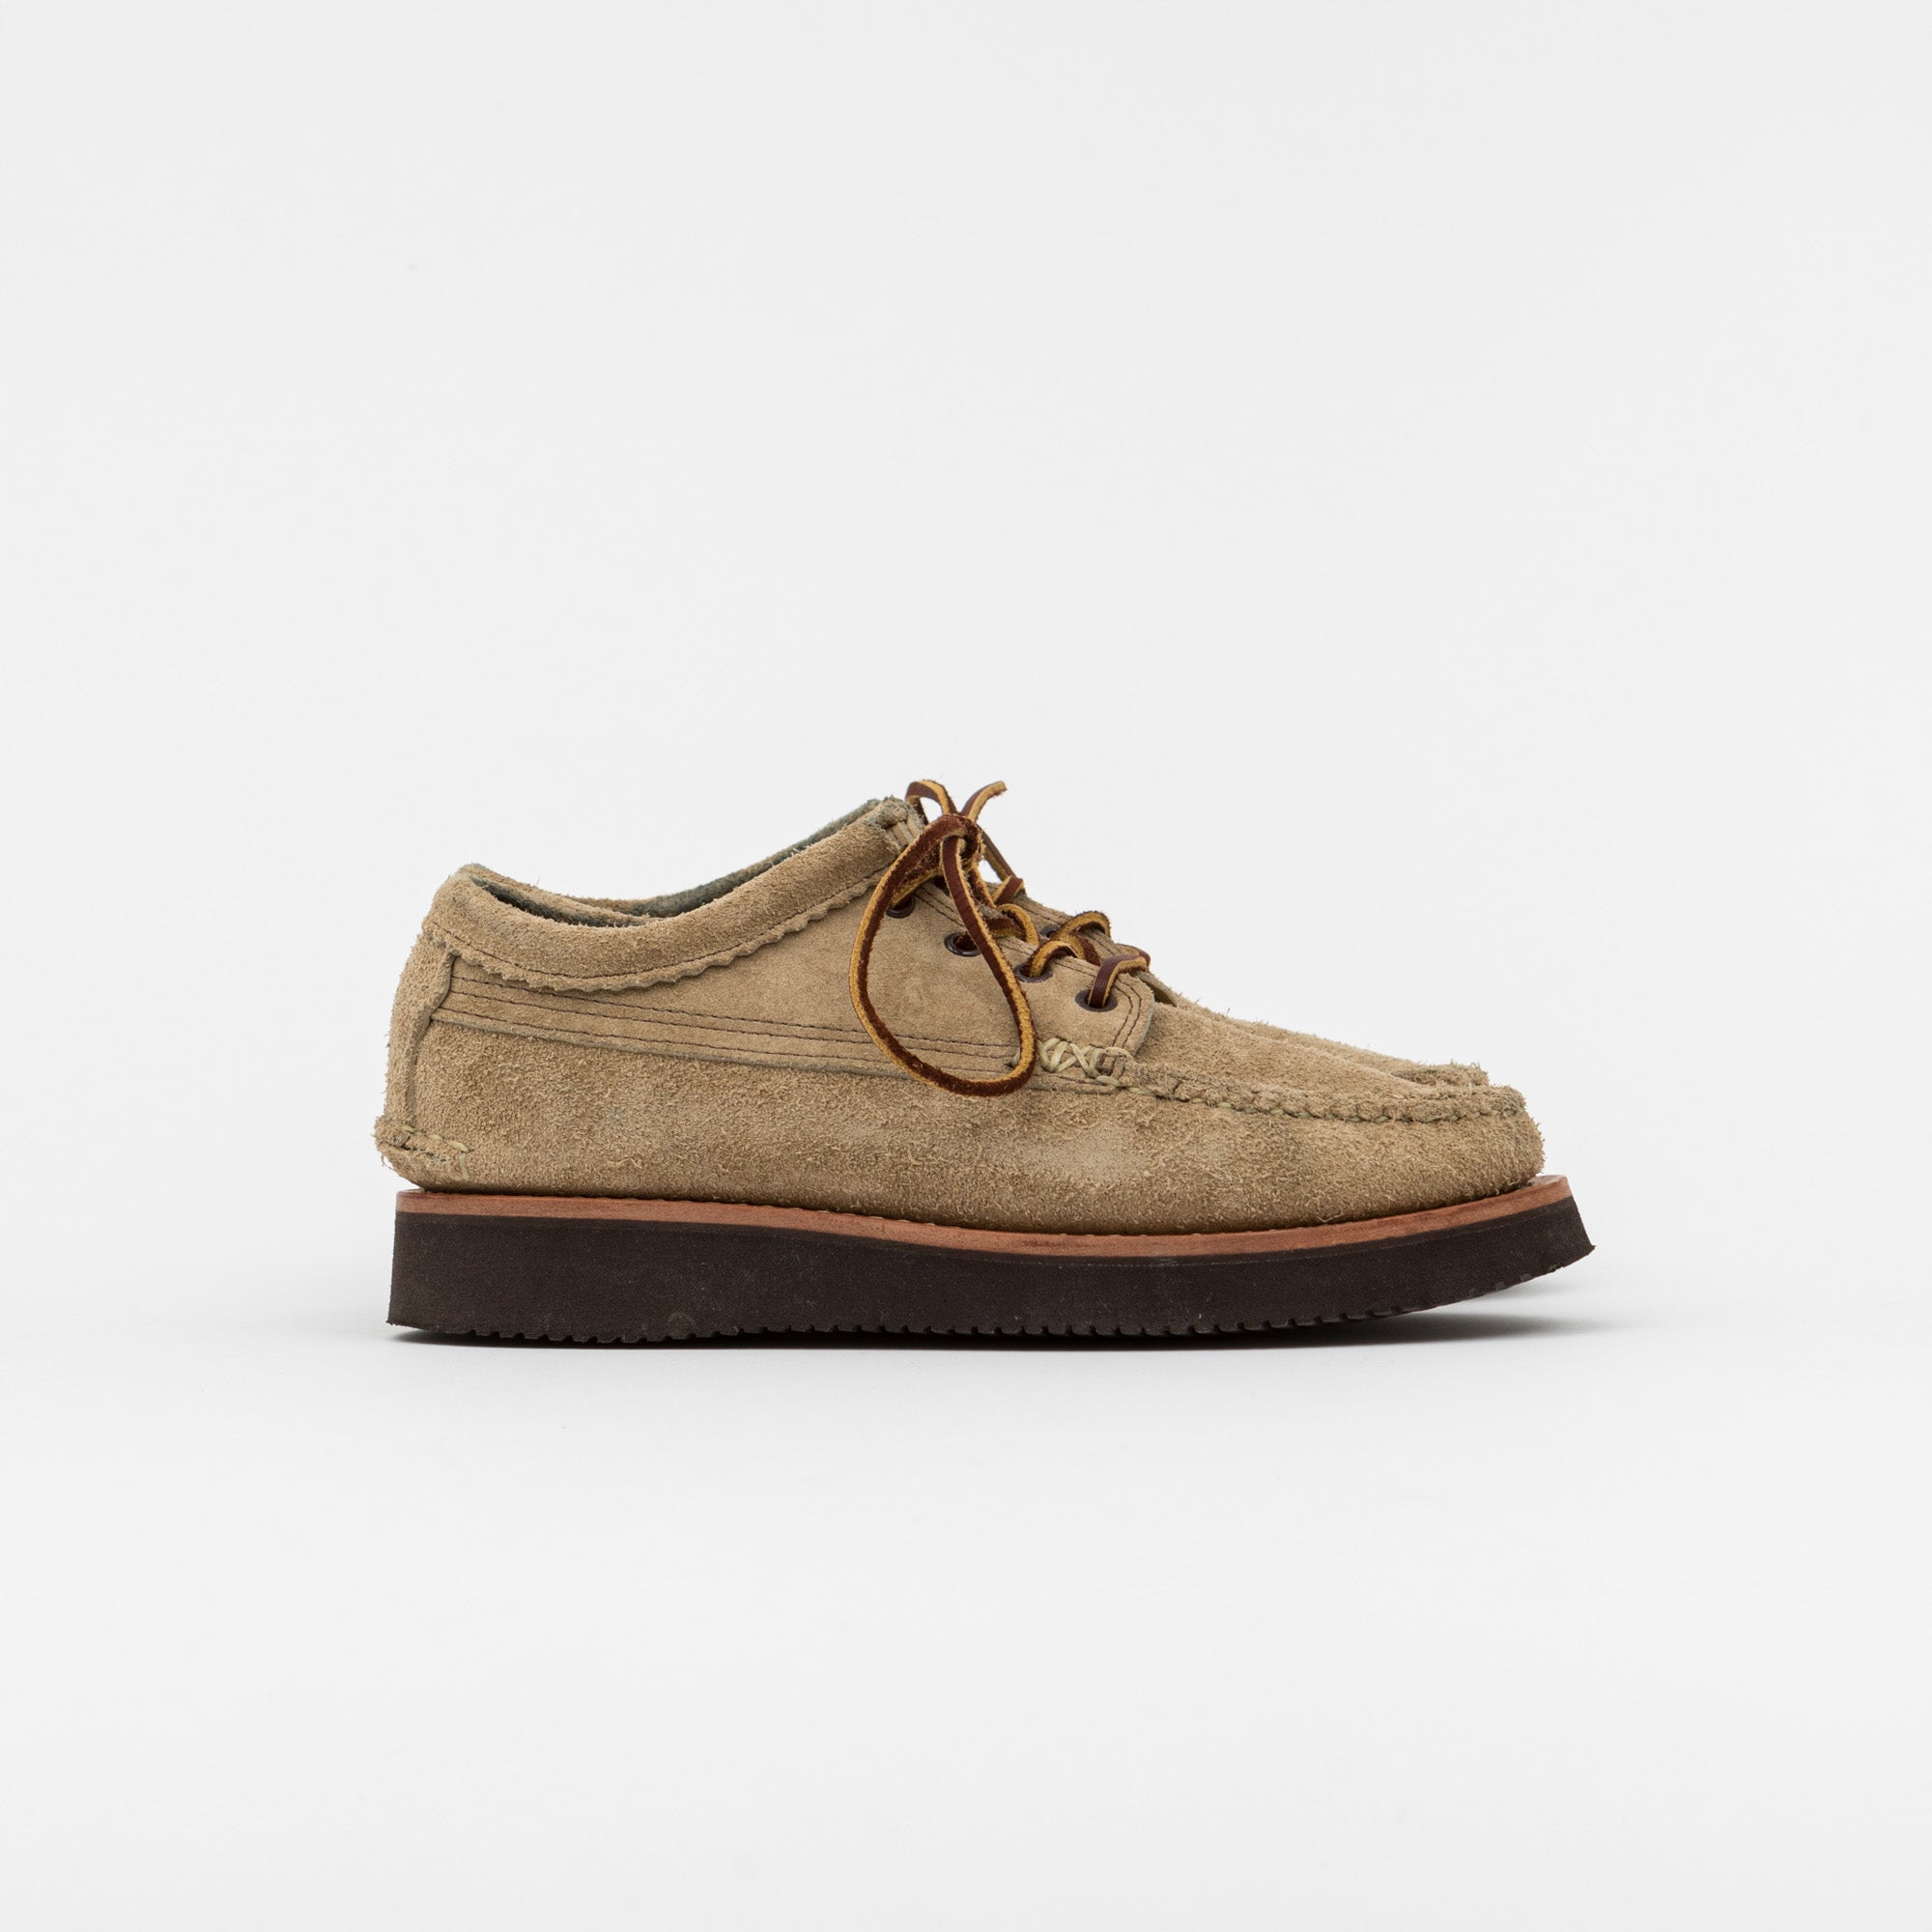 Yuketen Maine Guide Suede Oxford Shoe